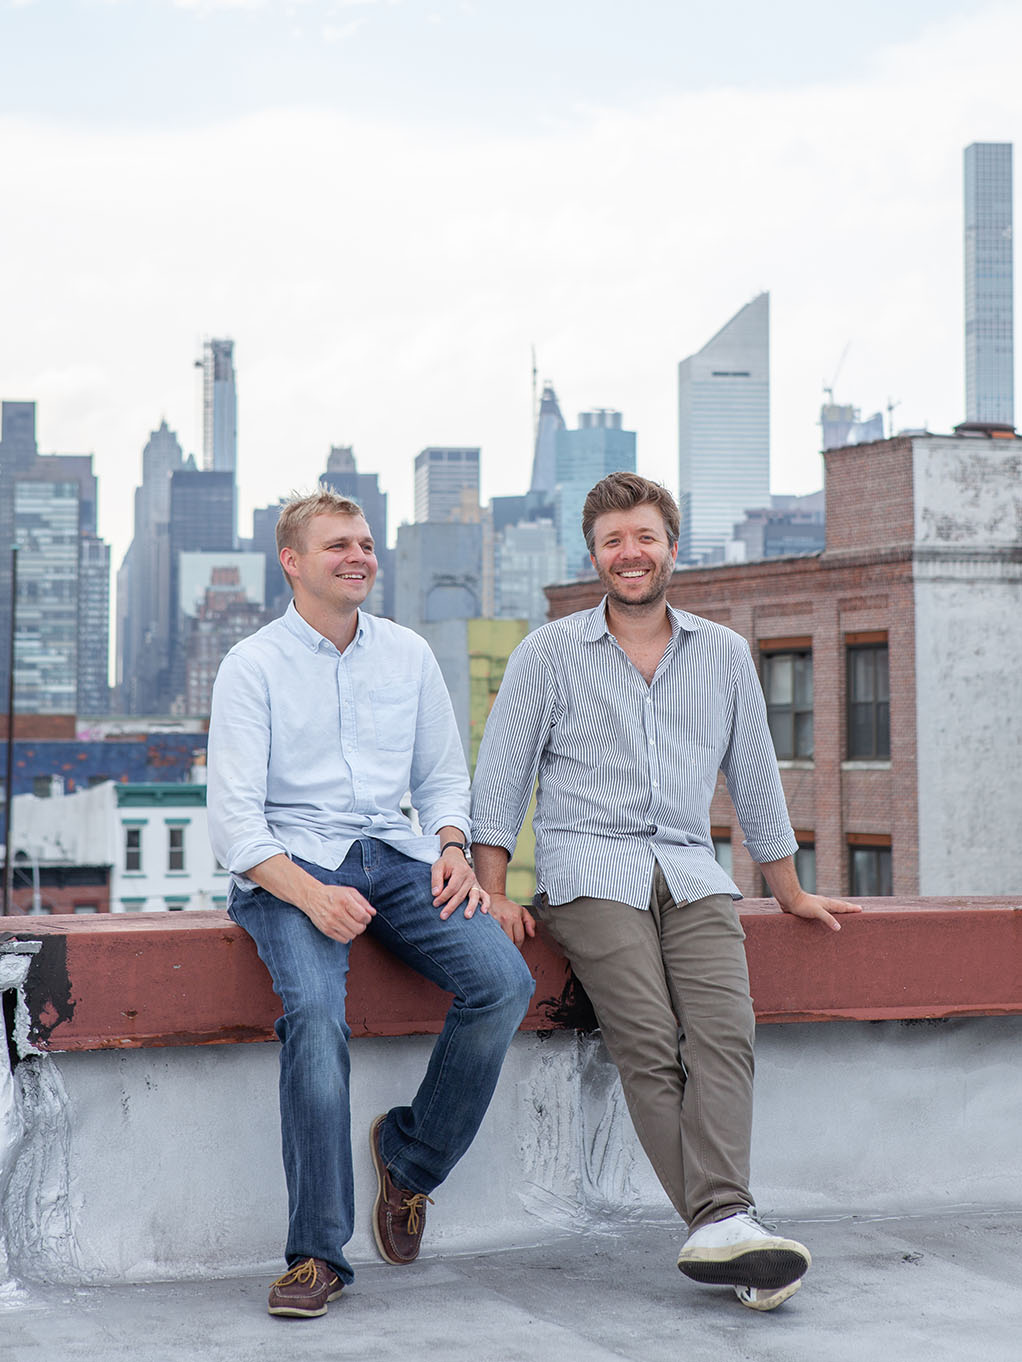 Stickbulb founders Russel Greenberg and Christopher Beardsley.